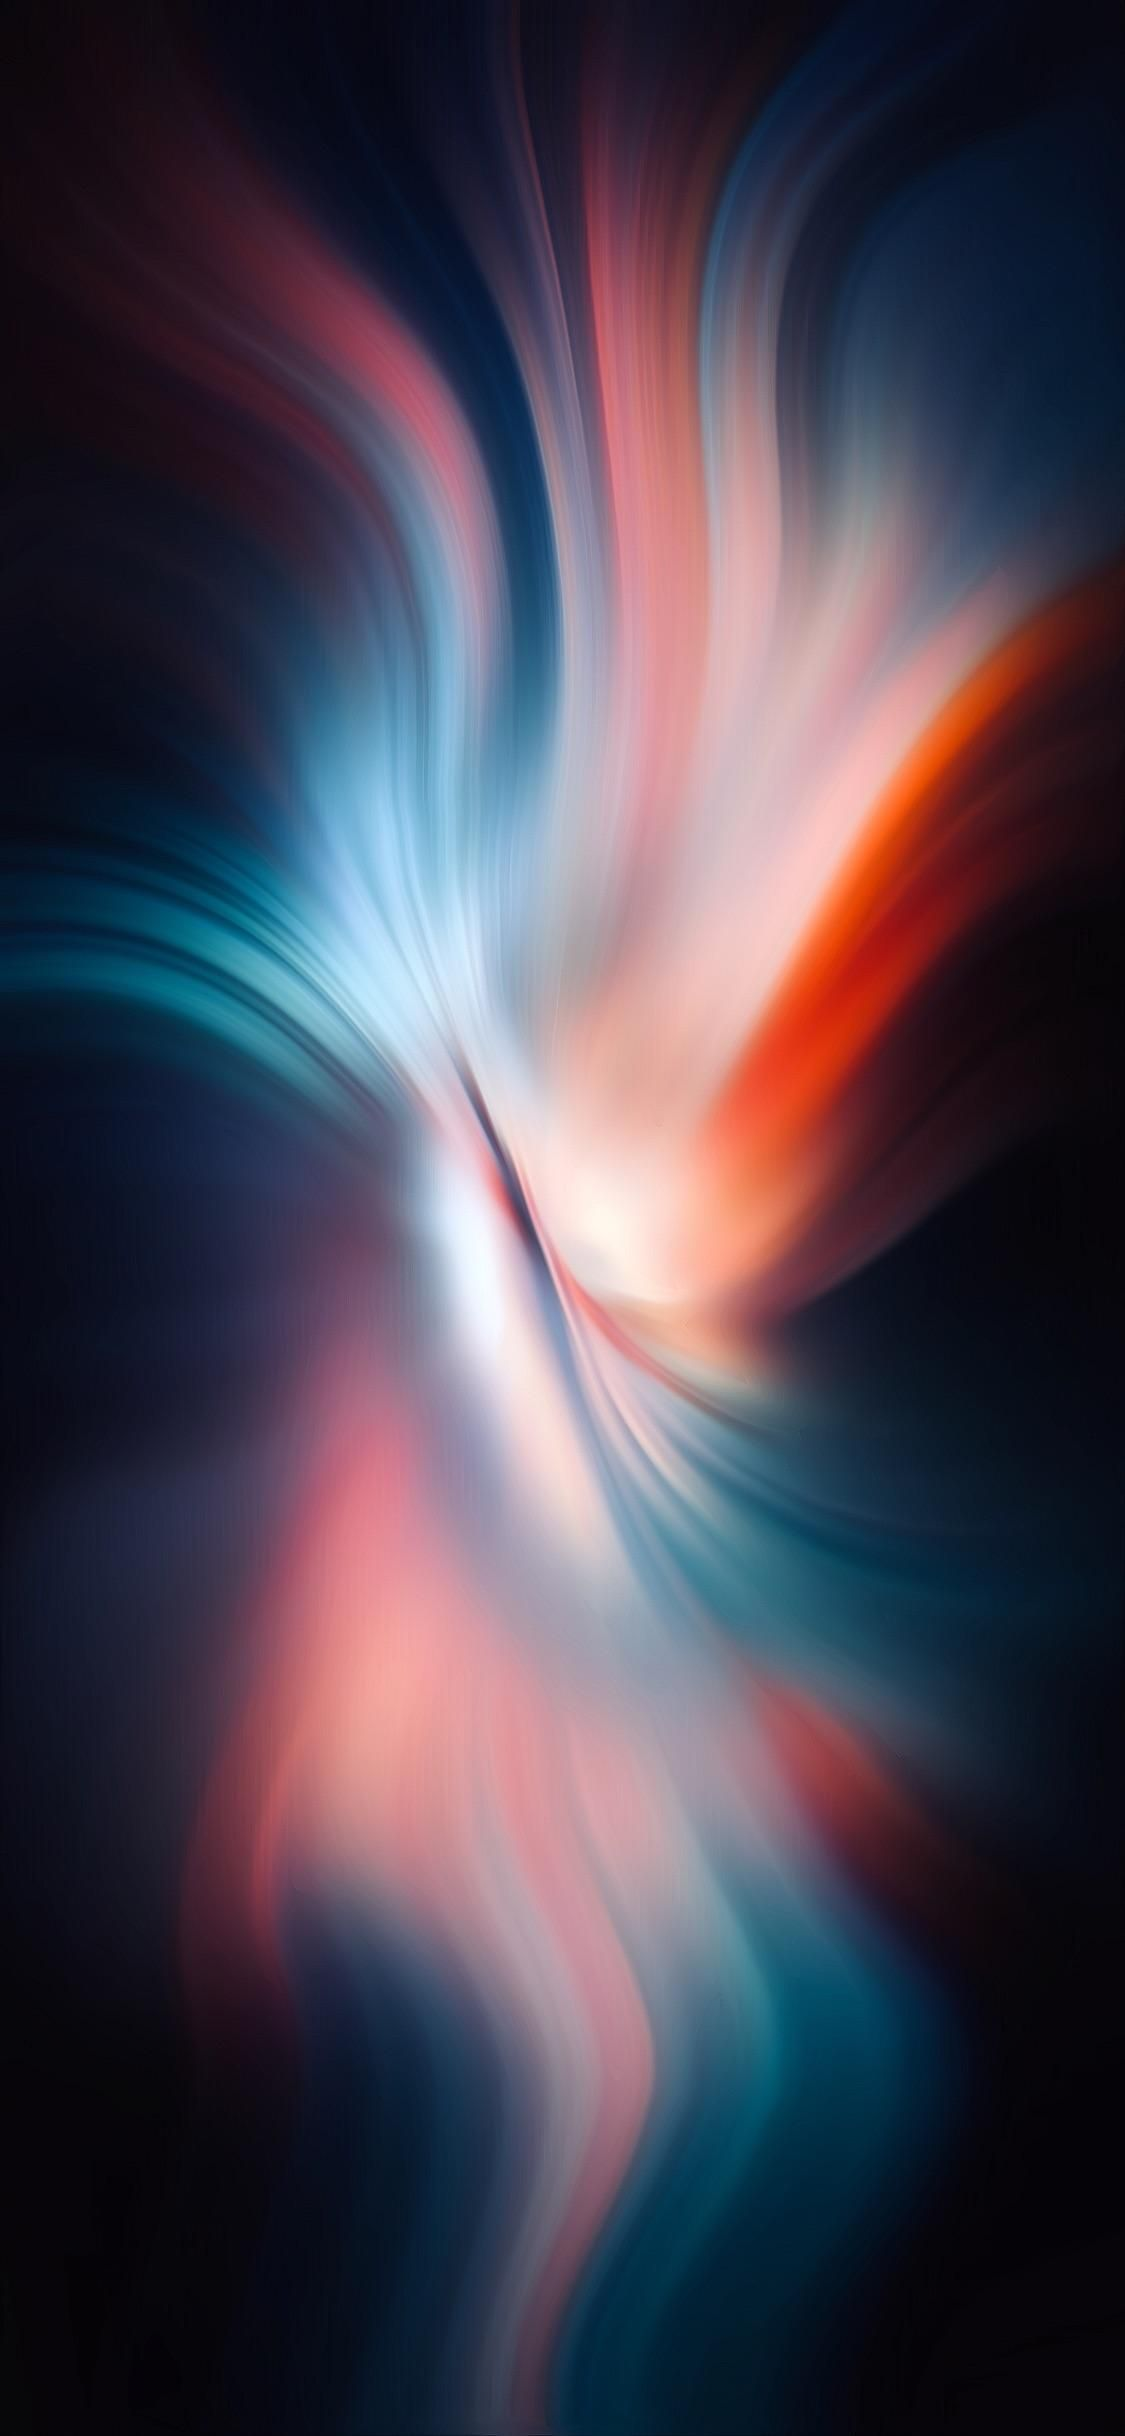 Virtual Flower. Thanks to AR7 Photography wallpaper